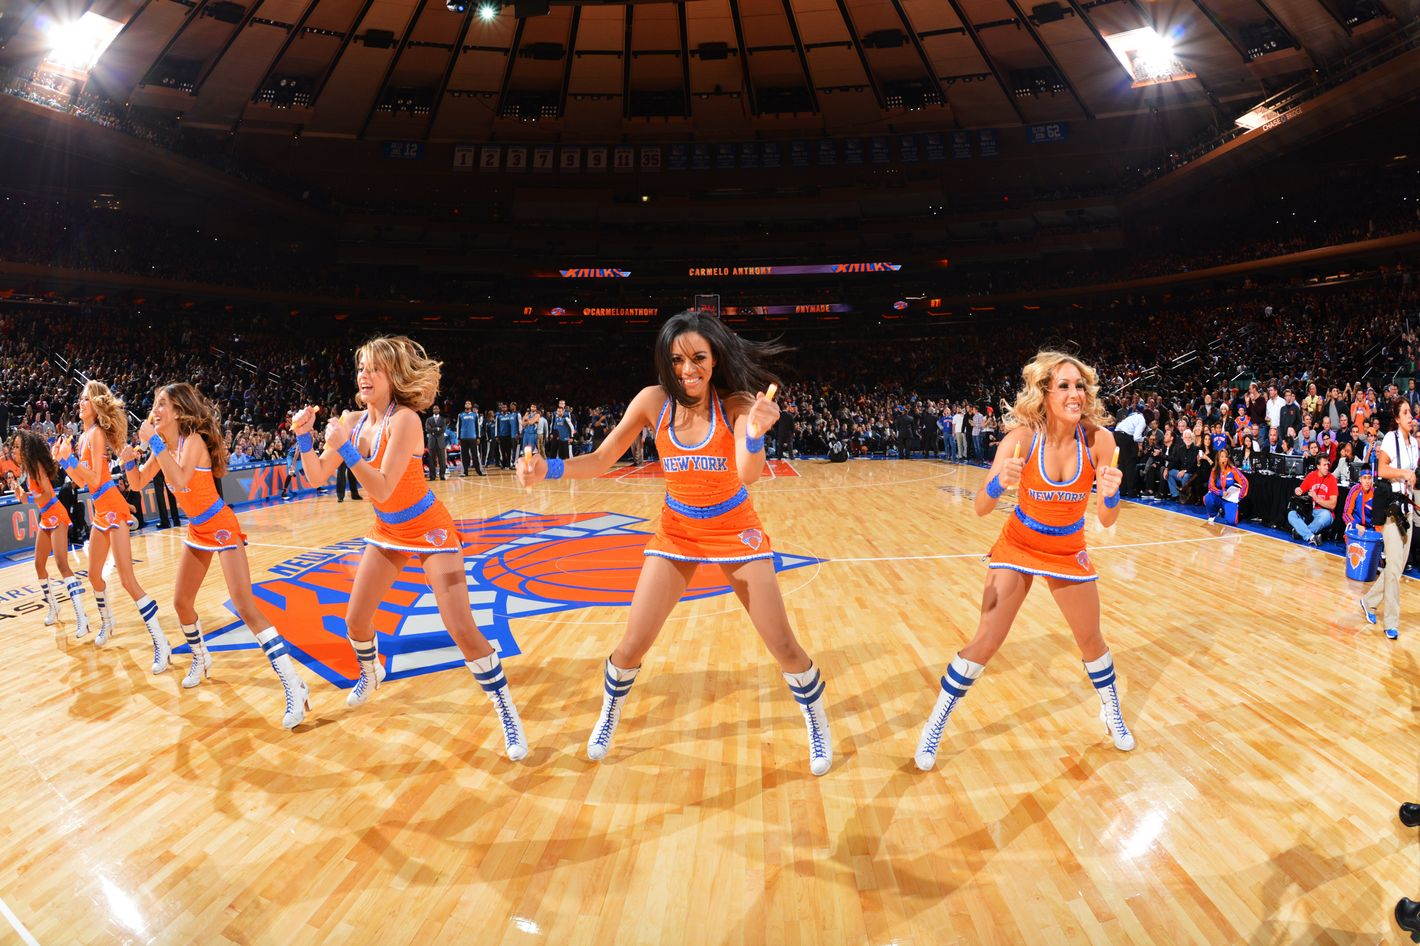 NEW YORK, NY - NOVEMBER 03: The New York Knicks city dancers perform against the Minnesota Timberwolves on November 3, 2013 at Madison Square Garden in New York City, New York. NOTE TO USER: User expressly acknowledges and agrees that, by downloading and or using this photograph, User is consenting to the terms and conditions of the Getty Images License Agreement. Mandatory Copyright Notice: Copyright 2013 NBAE (Photo by Jesse D. Garrabrant/NBAE via Getty Images)